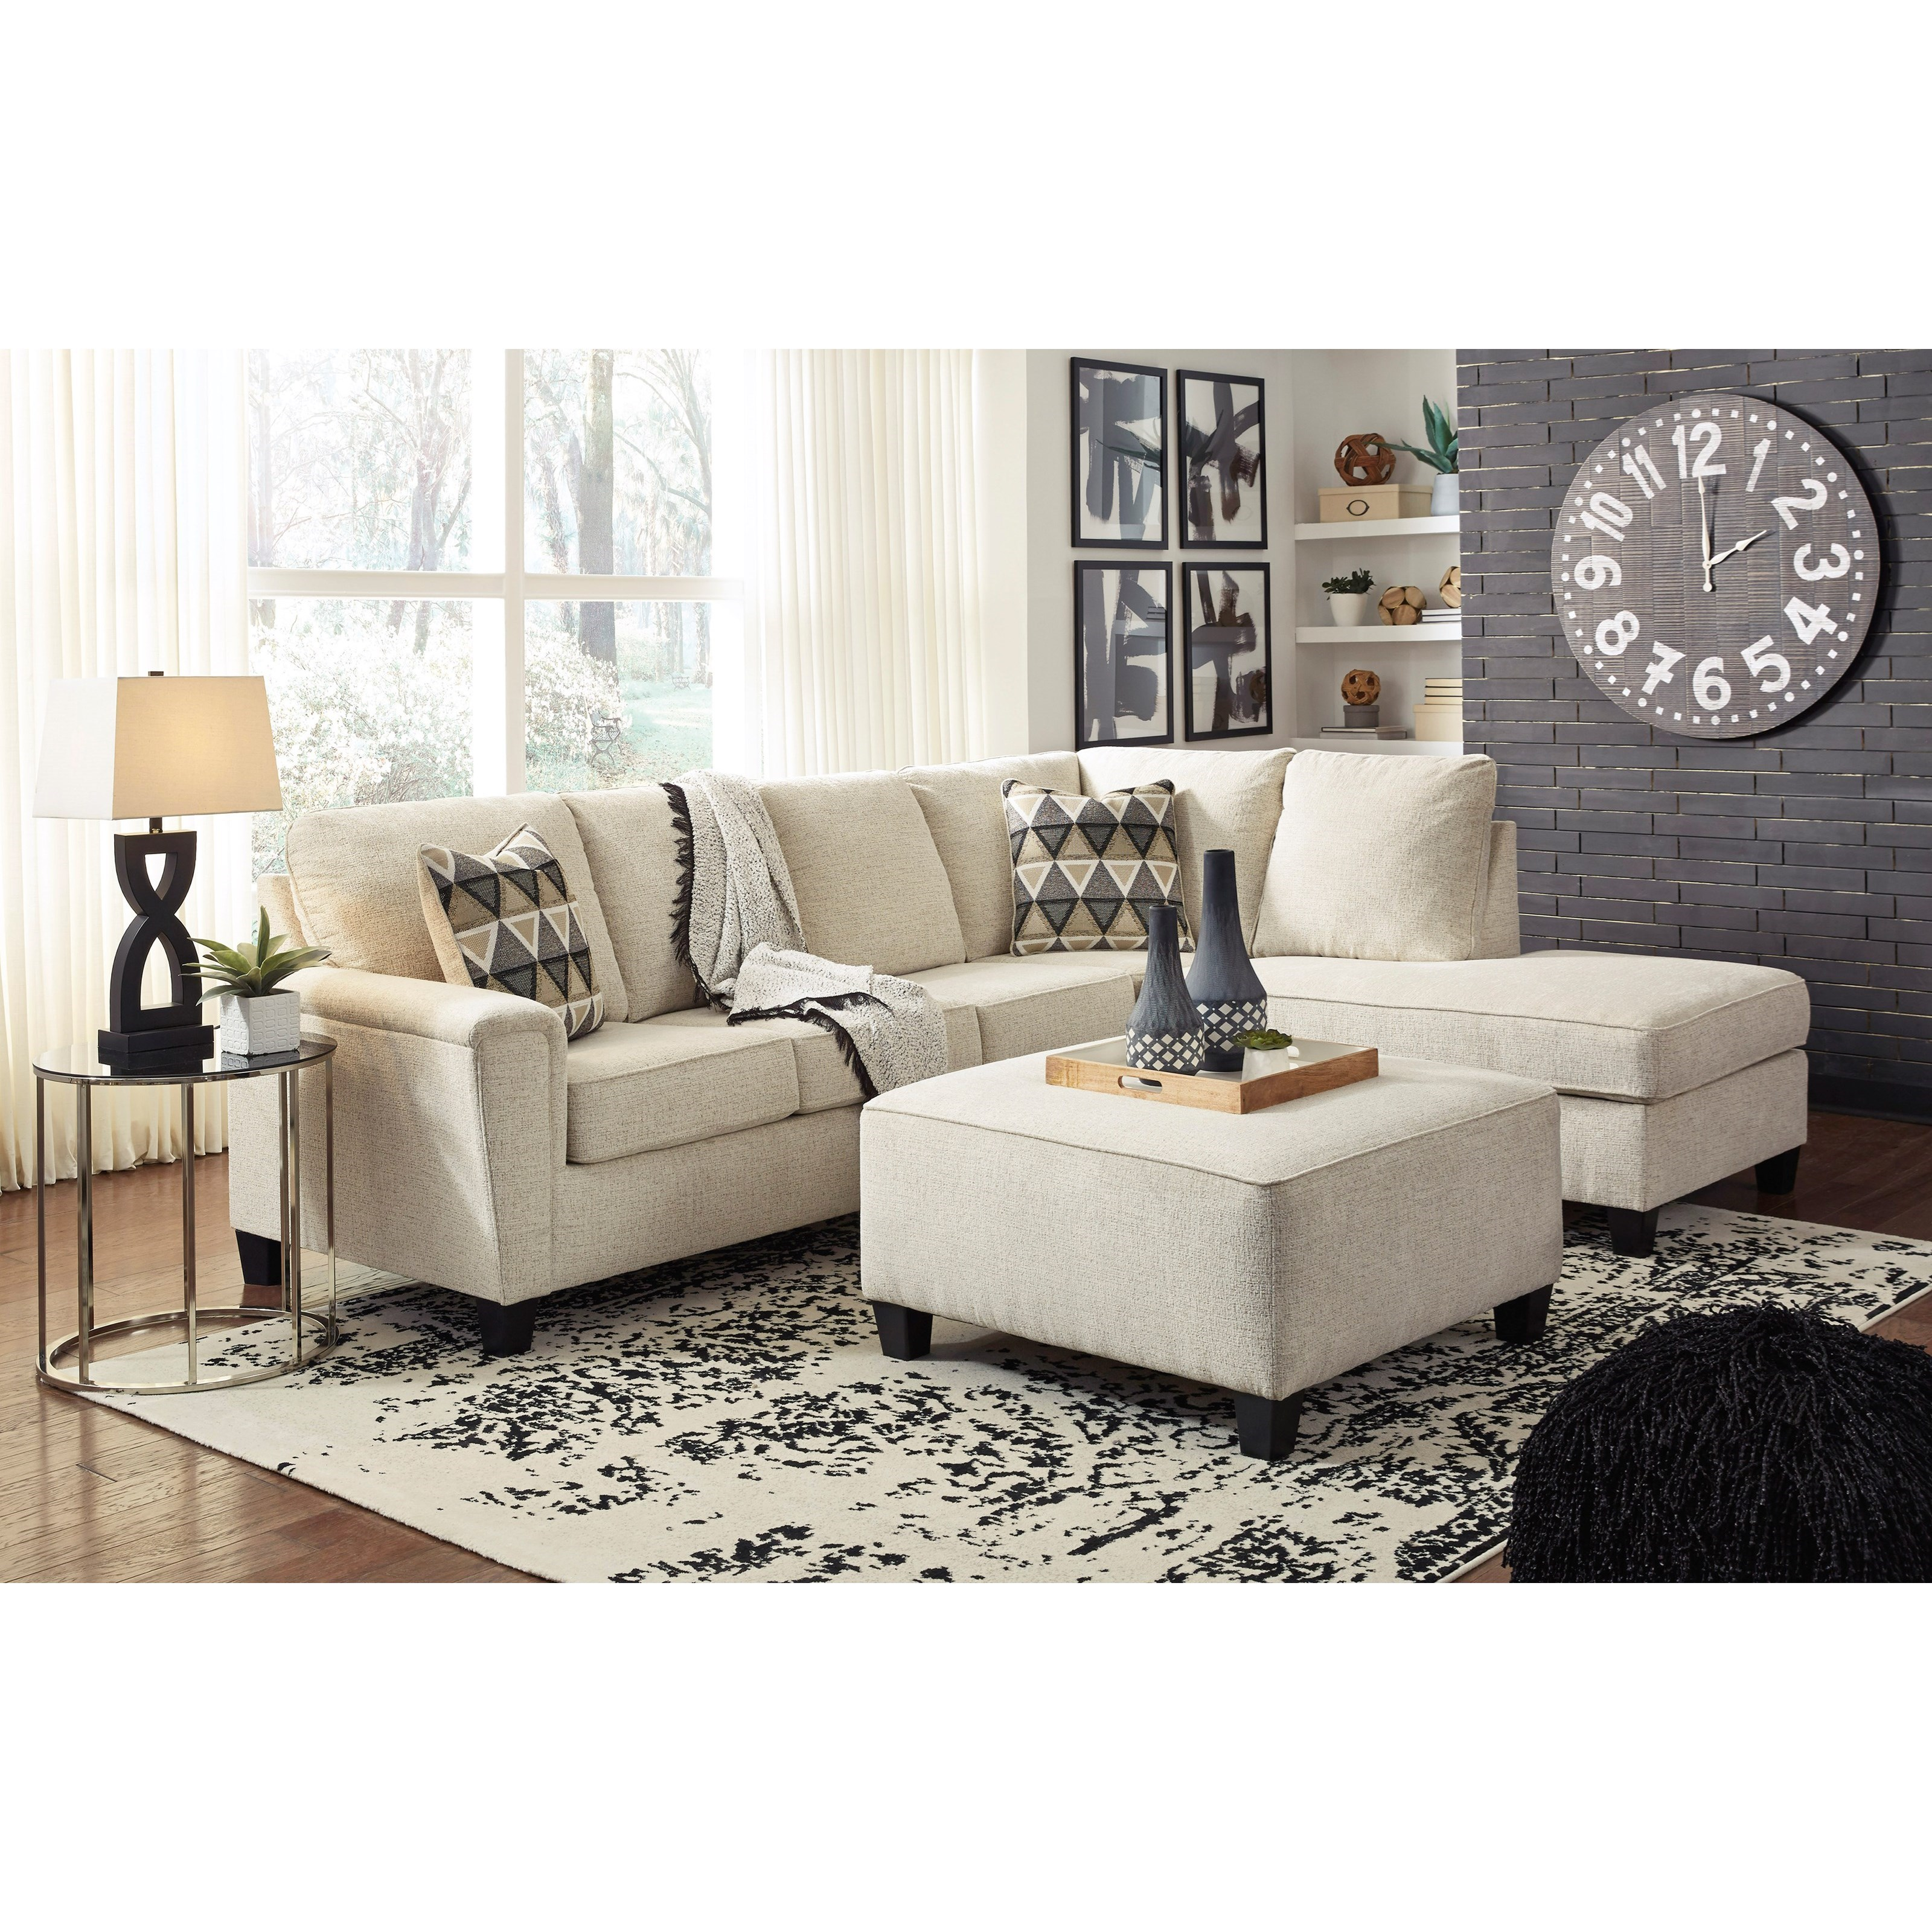 Abinger Living Room Group at Sadler's Home Furnishings